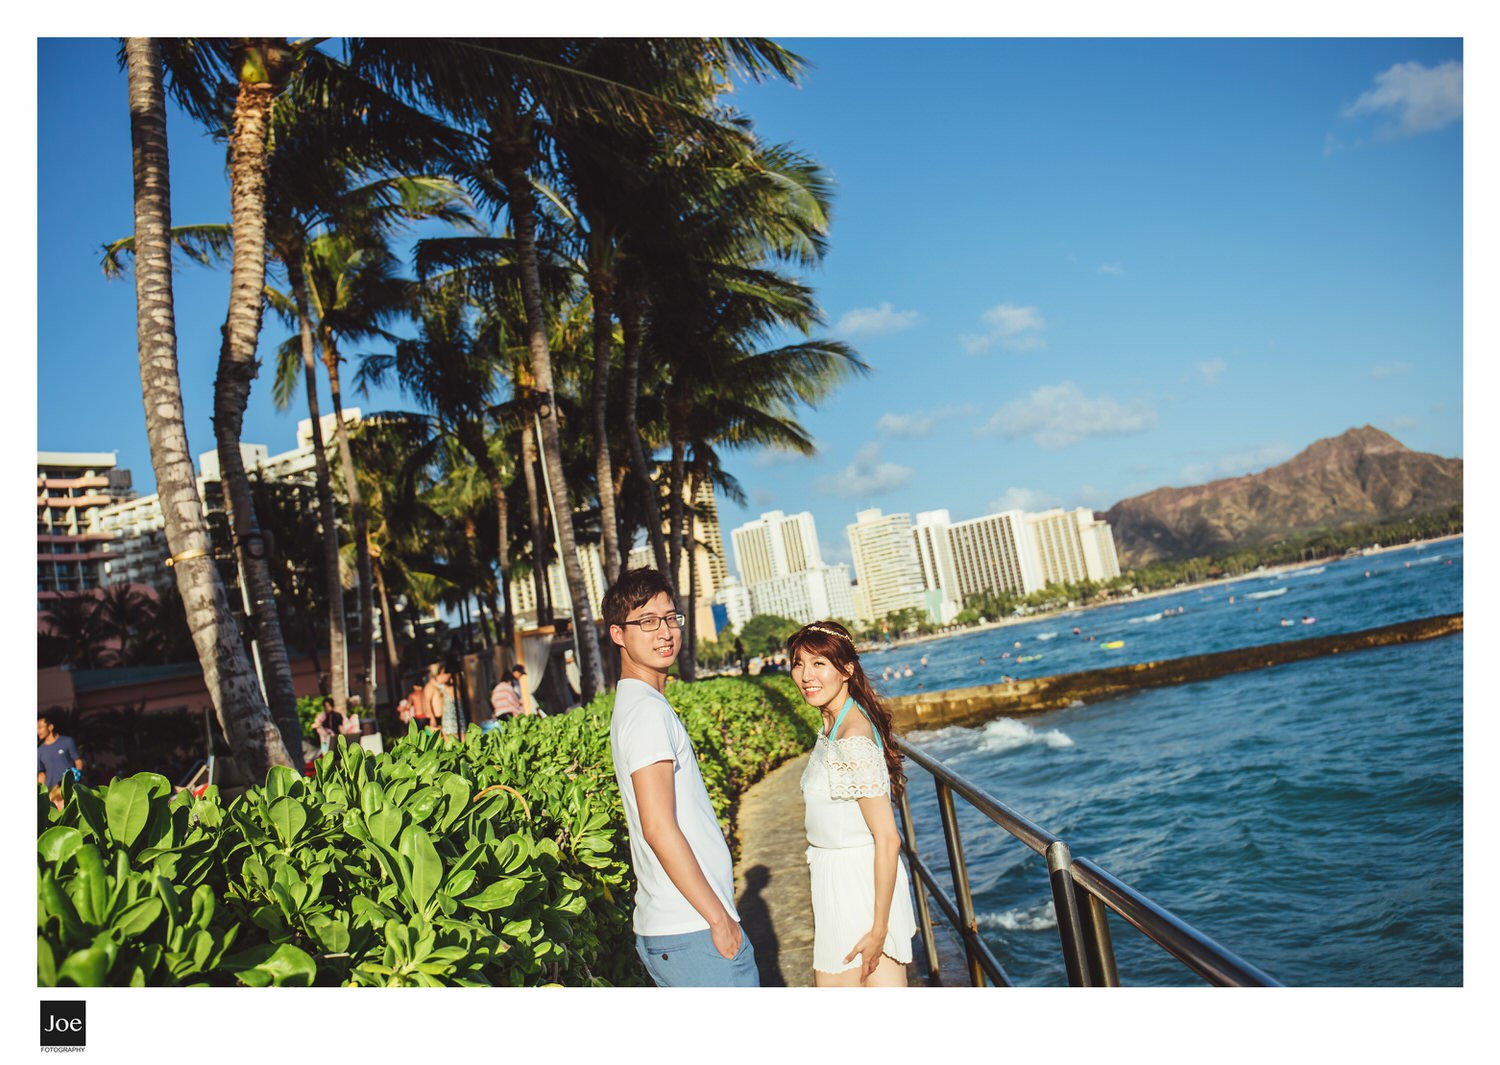 125-waikiki-beach-hawaii-pre-wedding-tiffany-tony-joe-fotography.jpg